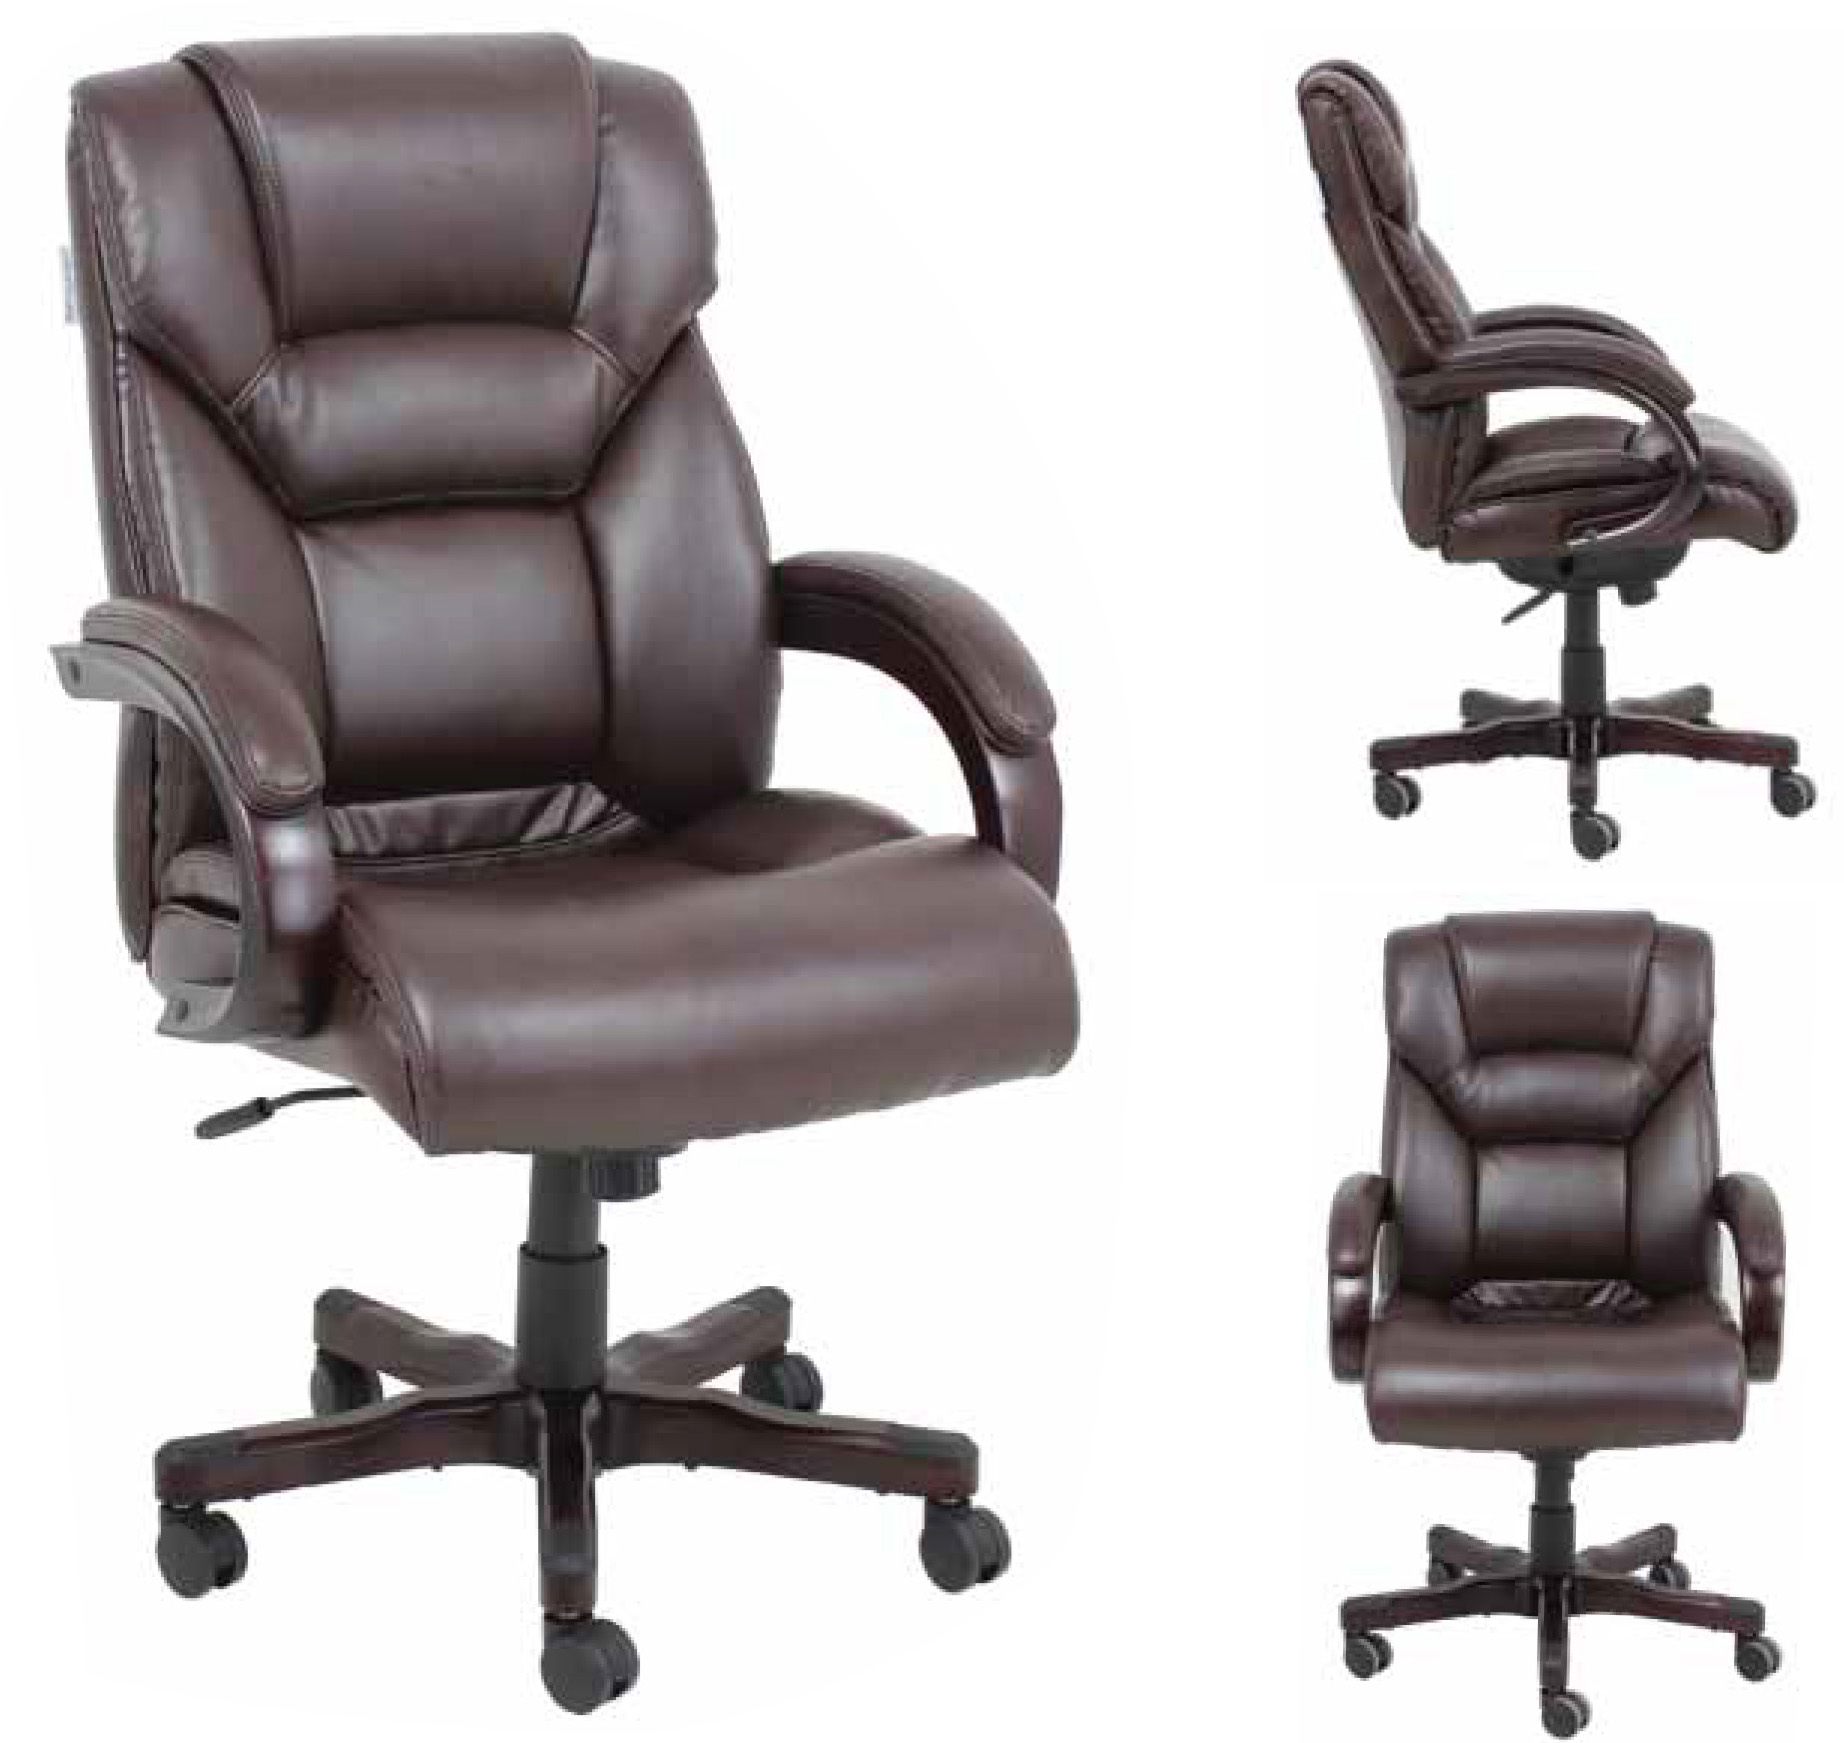 Barcalounger Neptune Ii Home Office Desk Chair Recliner Leather Recliner Chair Furniture Lounge Chair Recliners Chairs Sofas Office Chairs And Other Furniture